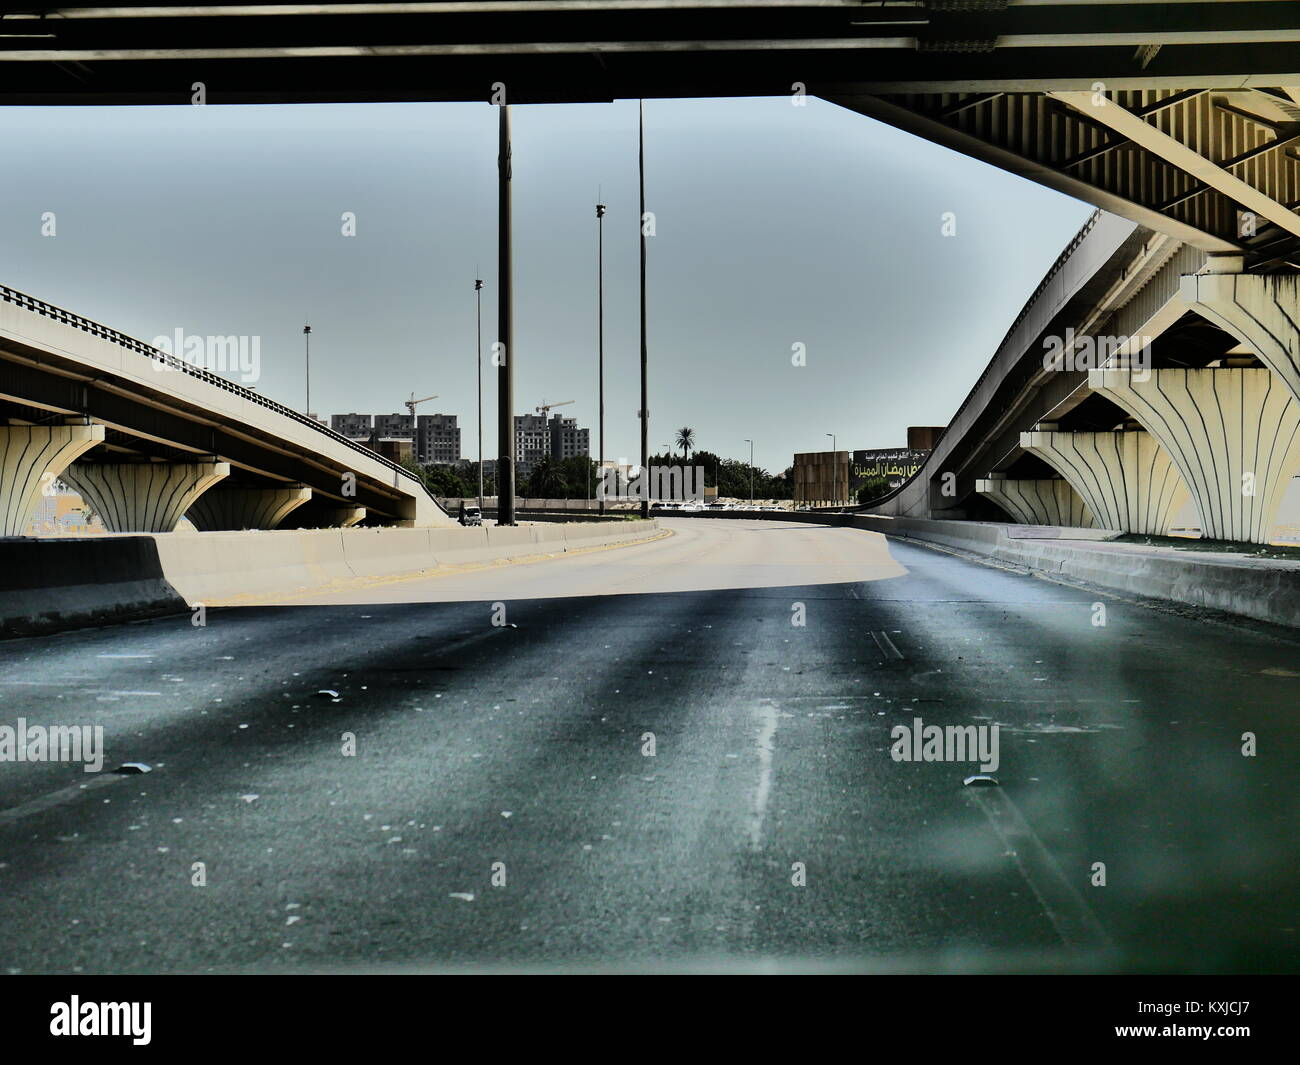 Images de la ville d'Al Khobar en Arabie Saoudite Photo Stock